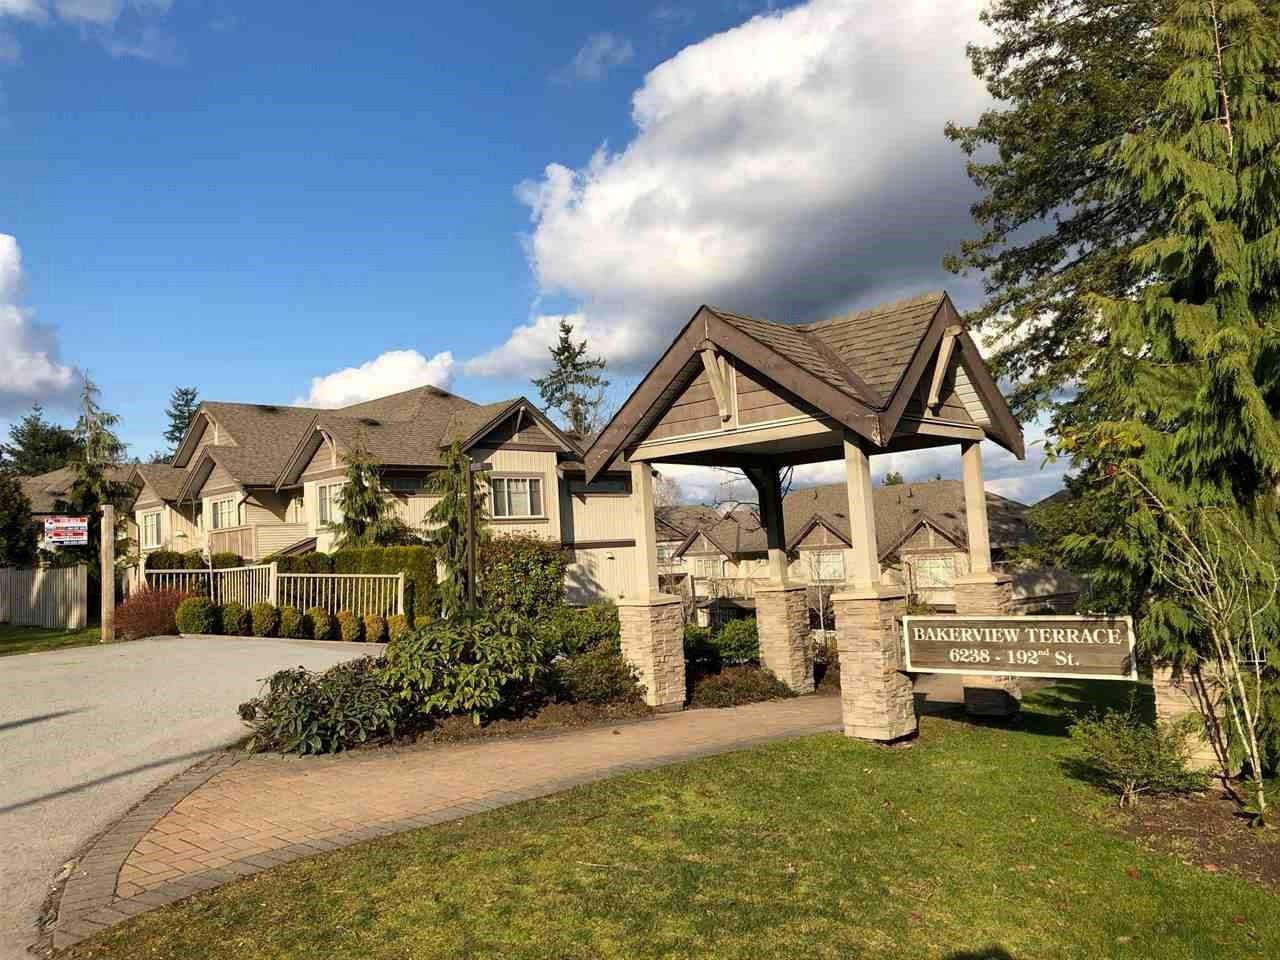 """Main Photo: 26 6238 192 Street in Surrey: Cloverdale BC Townhouse for sale in """"Bakerview Terrace"""" (Cloverdale)  : MLS®# R2248106"""